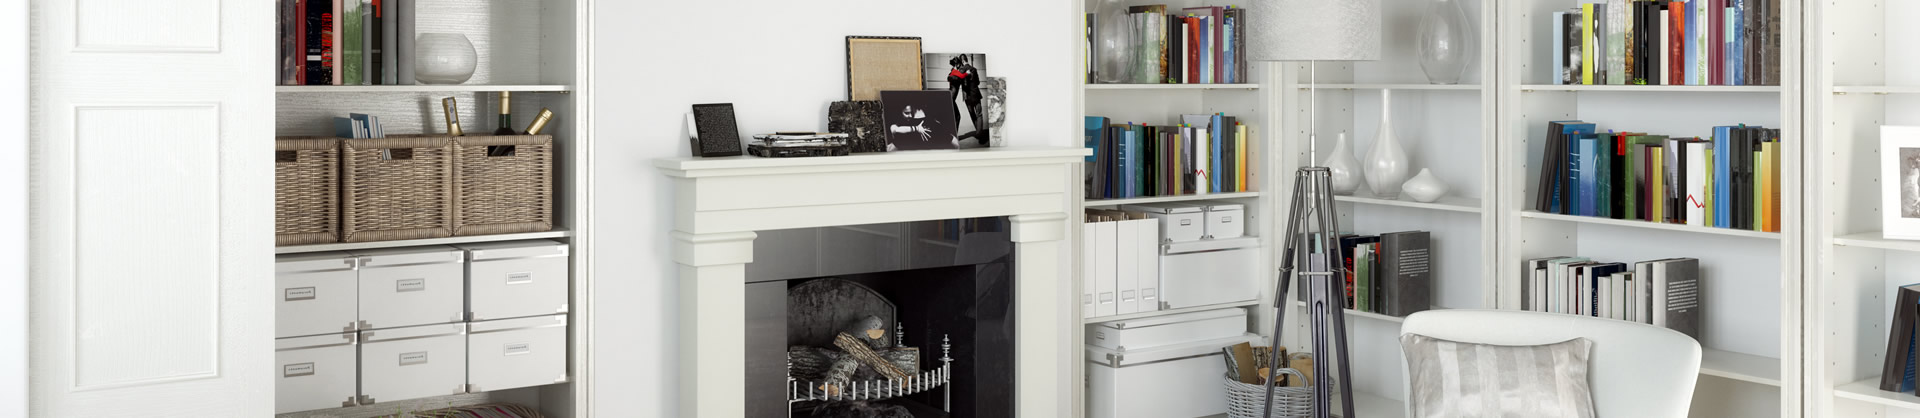 Home Organization - Declutter your Home!